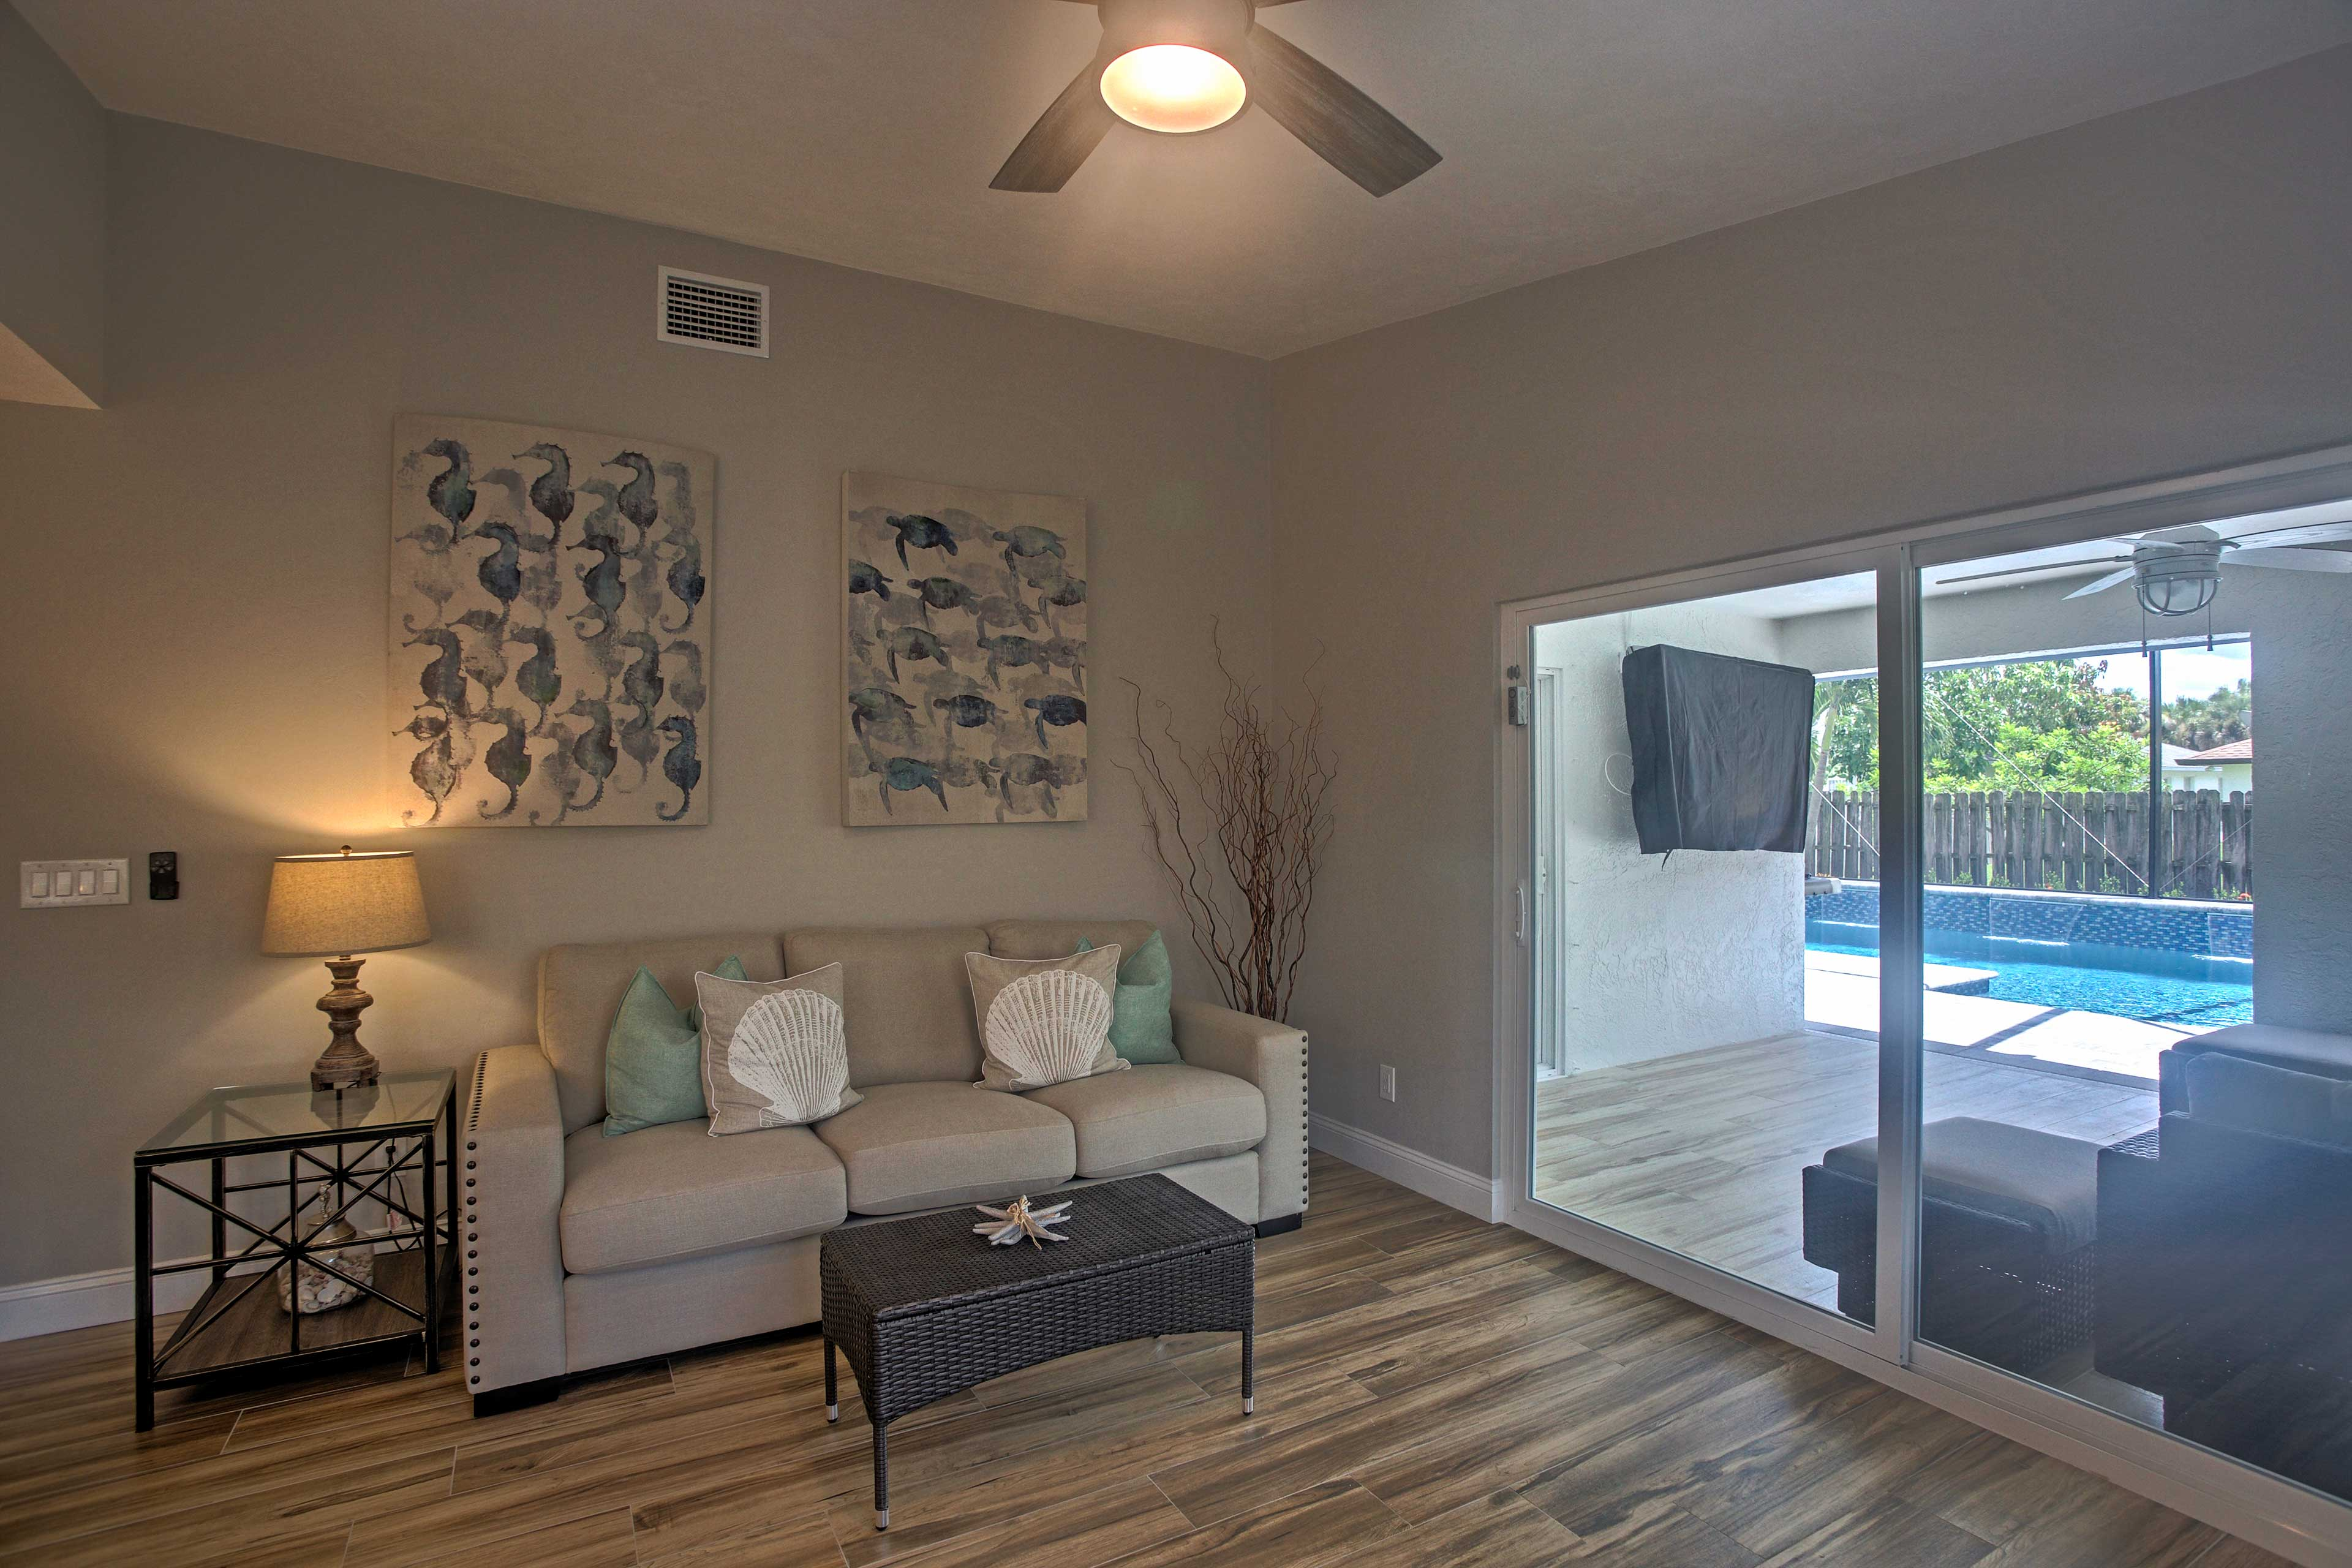 Another sitting area next to large glass doors fills the room with natural light